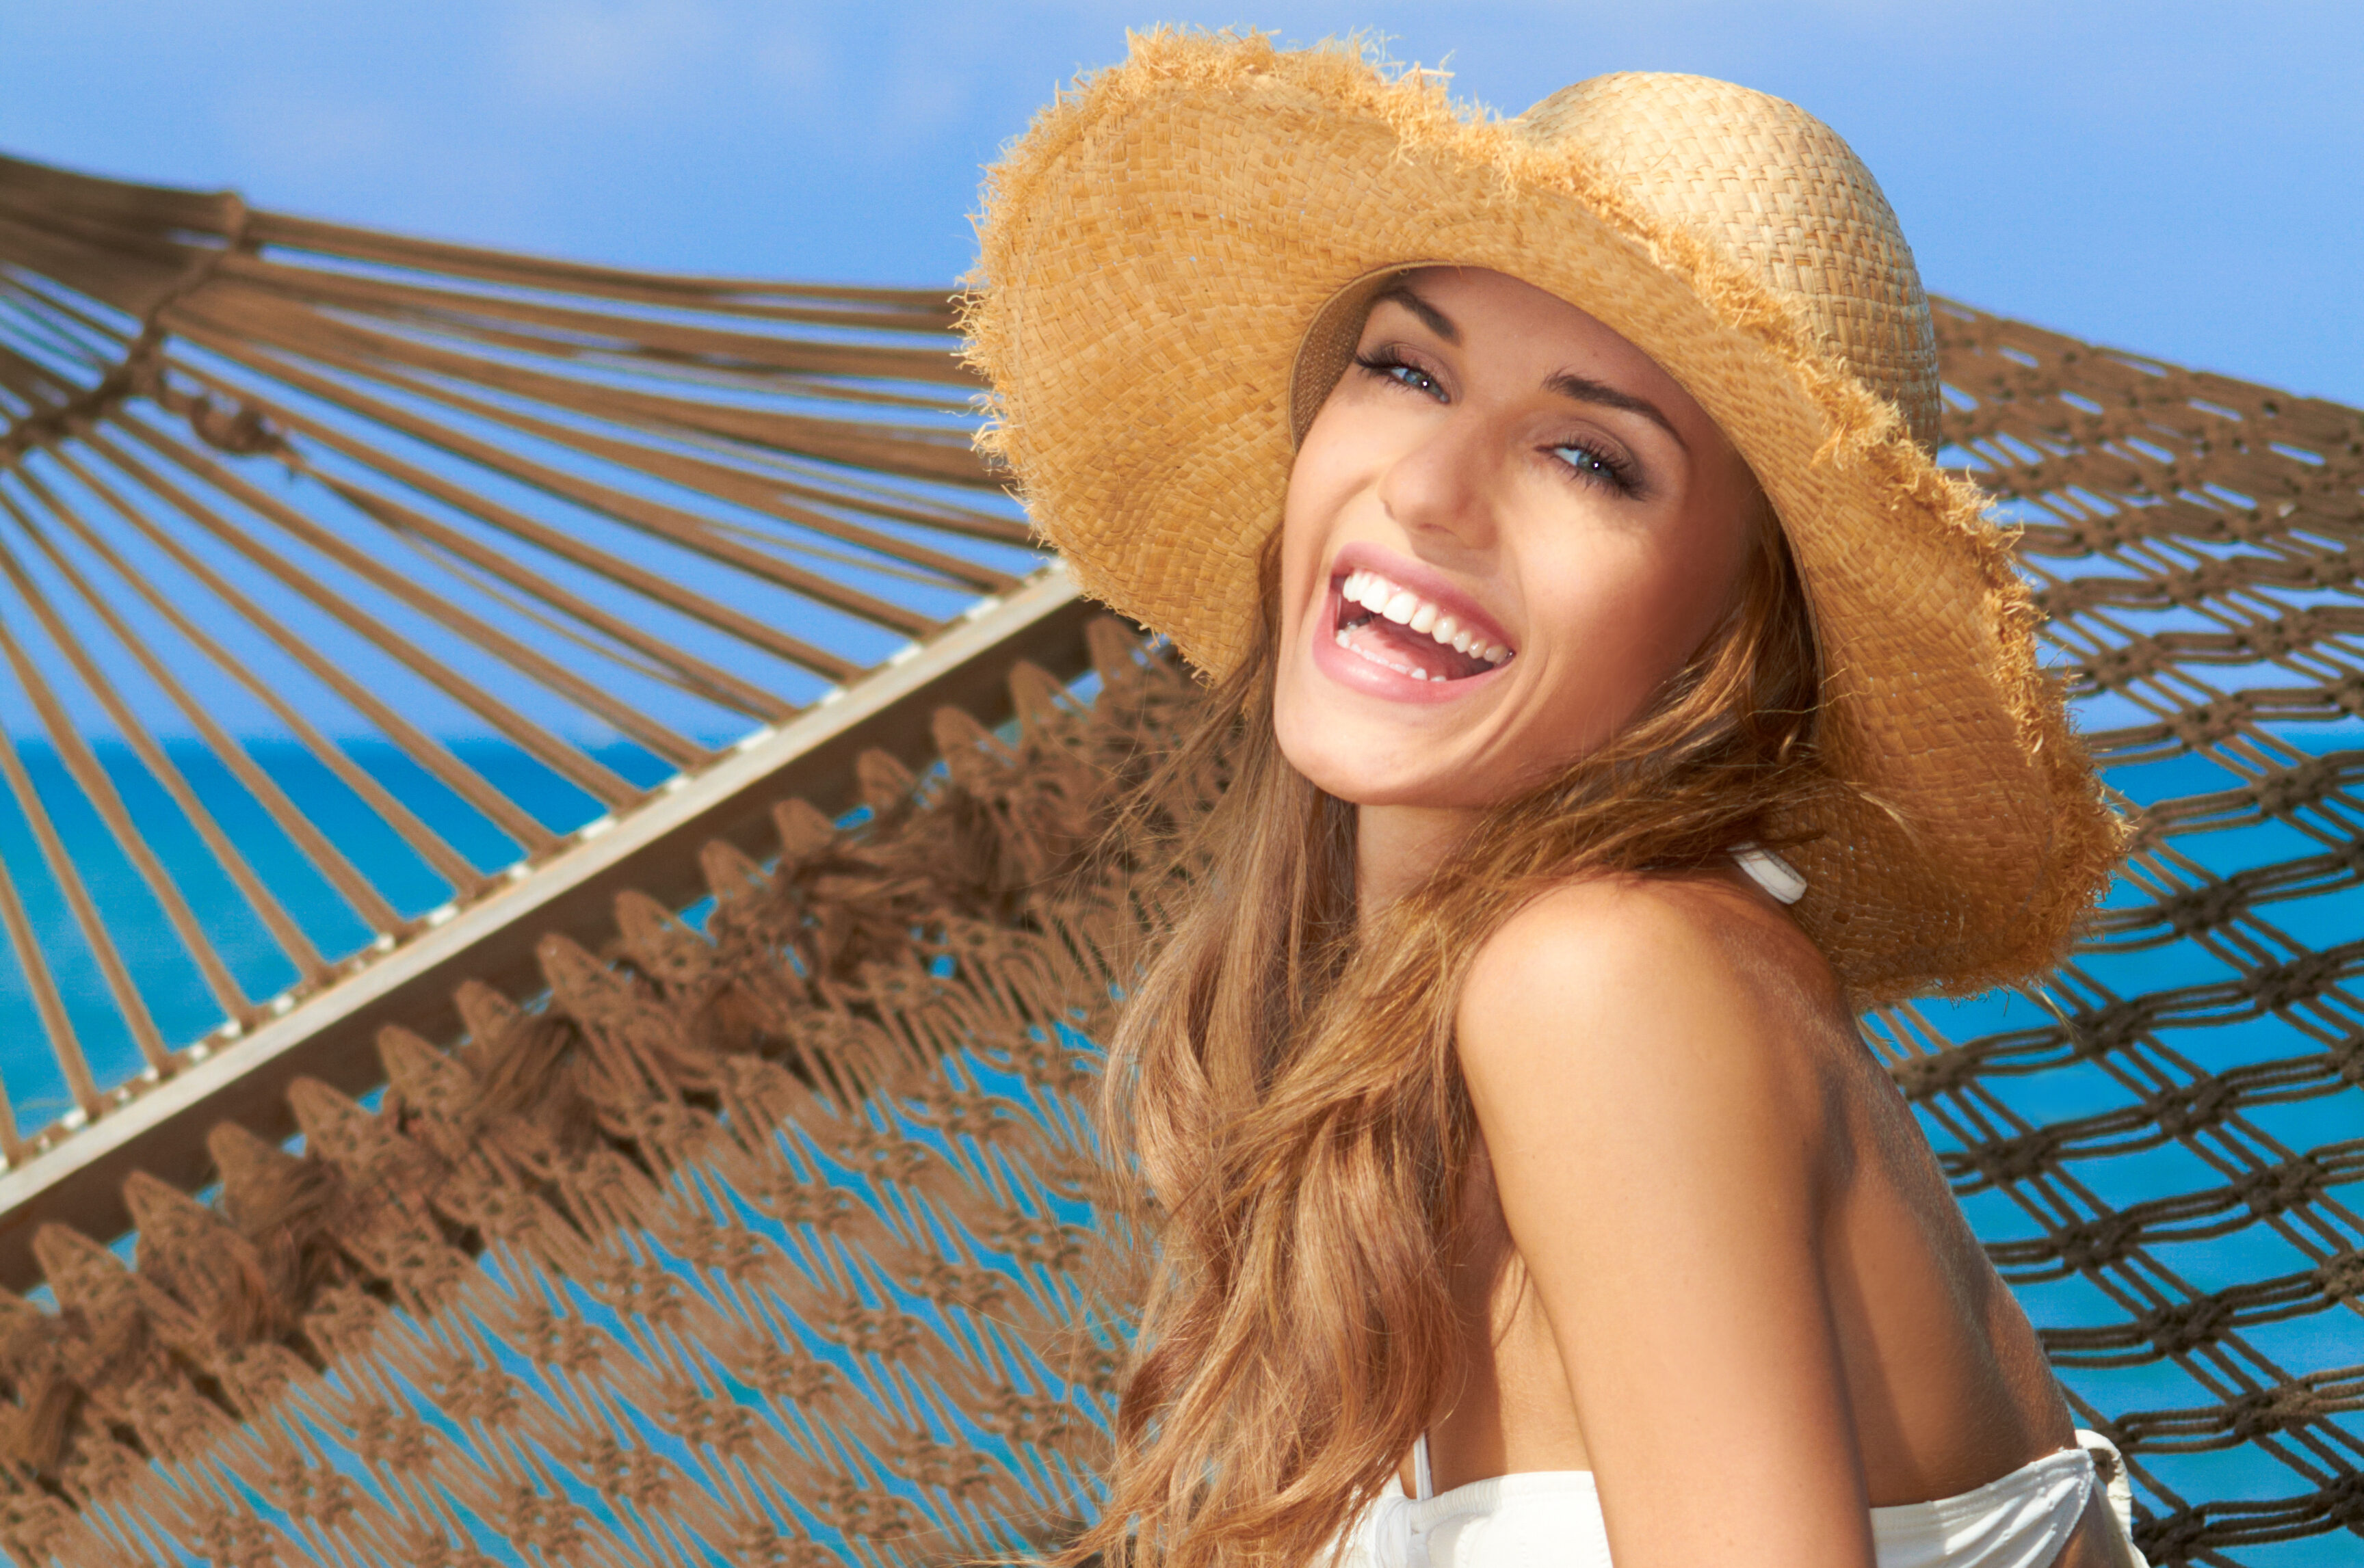 Vivacious happy woman sitting elegantly on a hammock in a bikini and wide brimmed straw sun hat